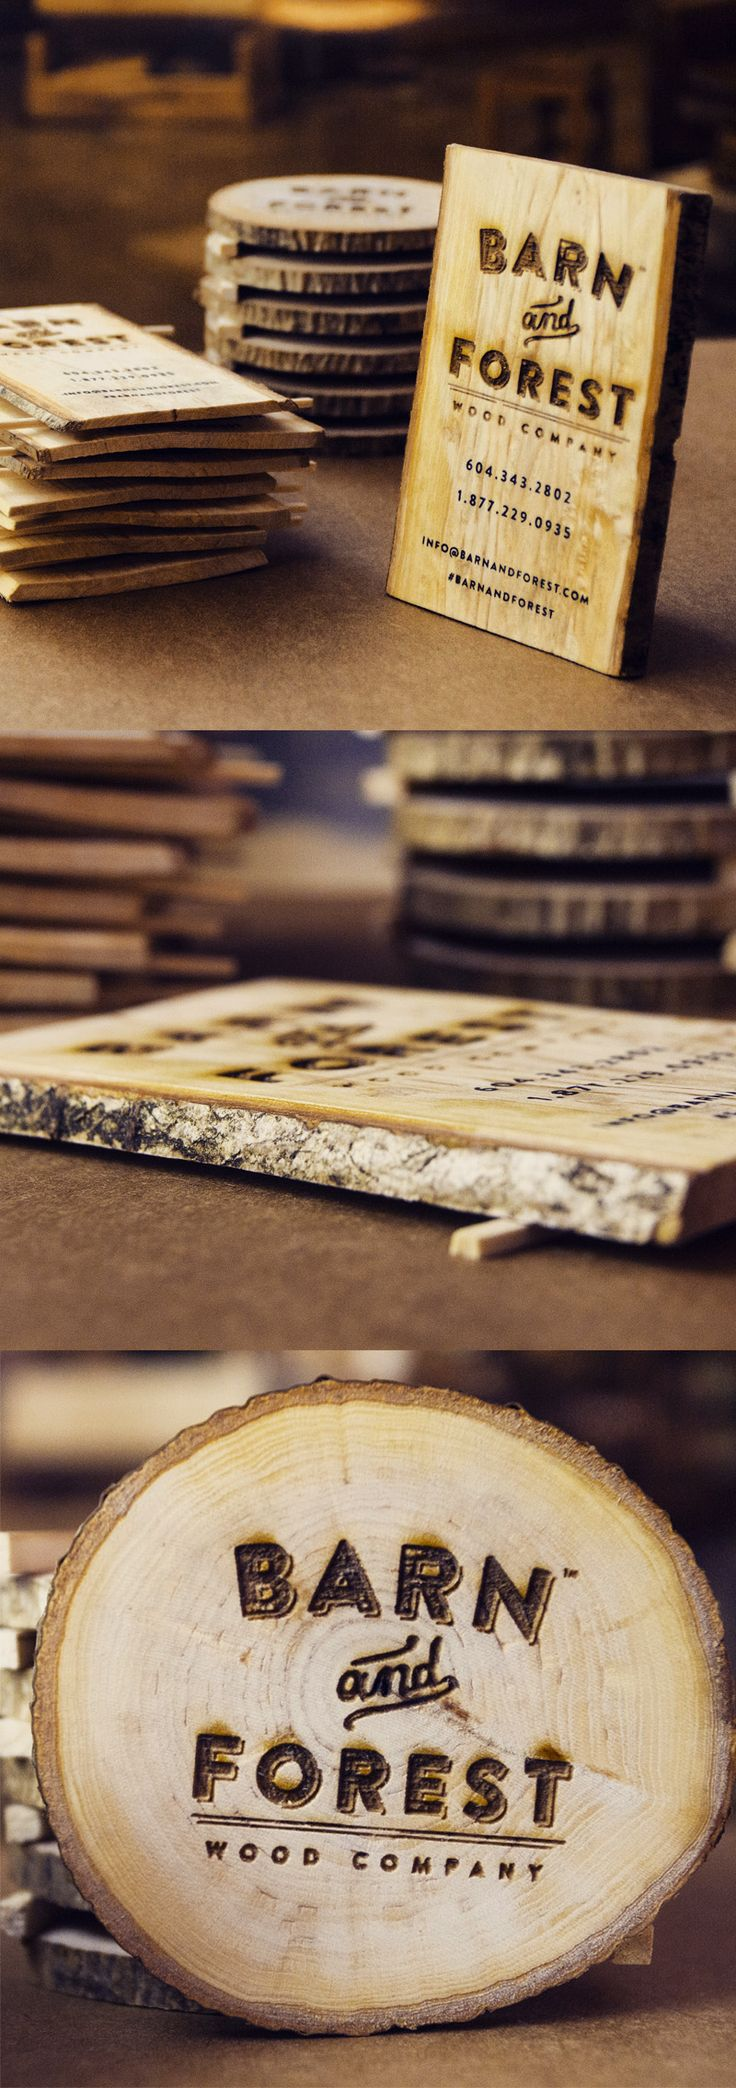 Creative Business Card Design made of Wood